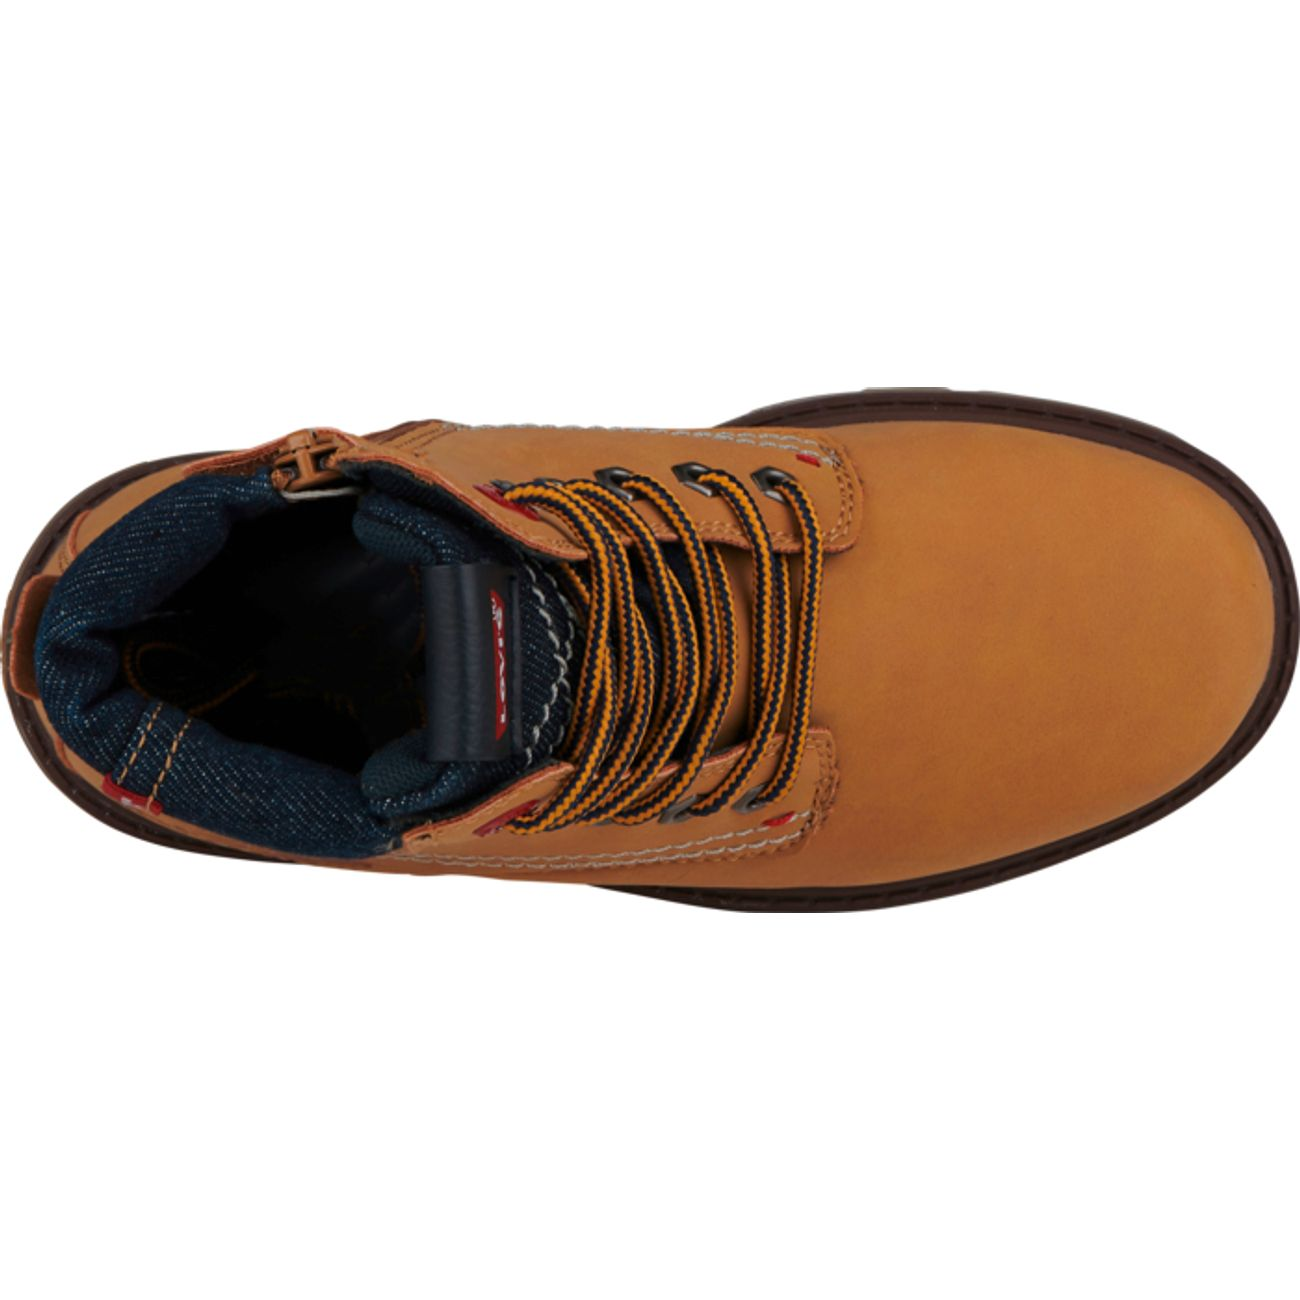 CHAUSSURES BASSES Urbain homme LEVIS FOREST